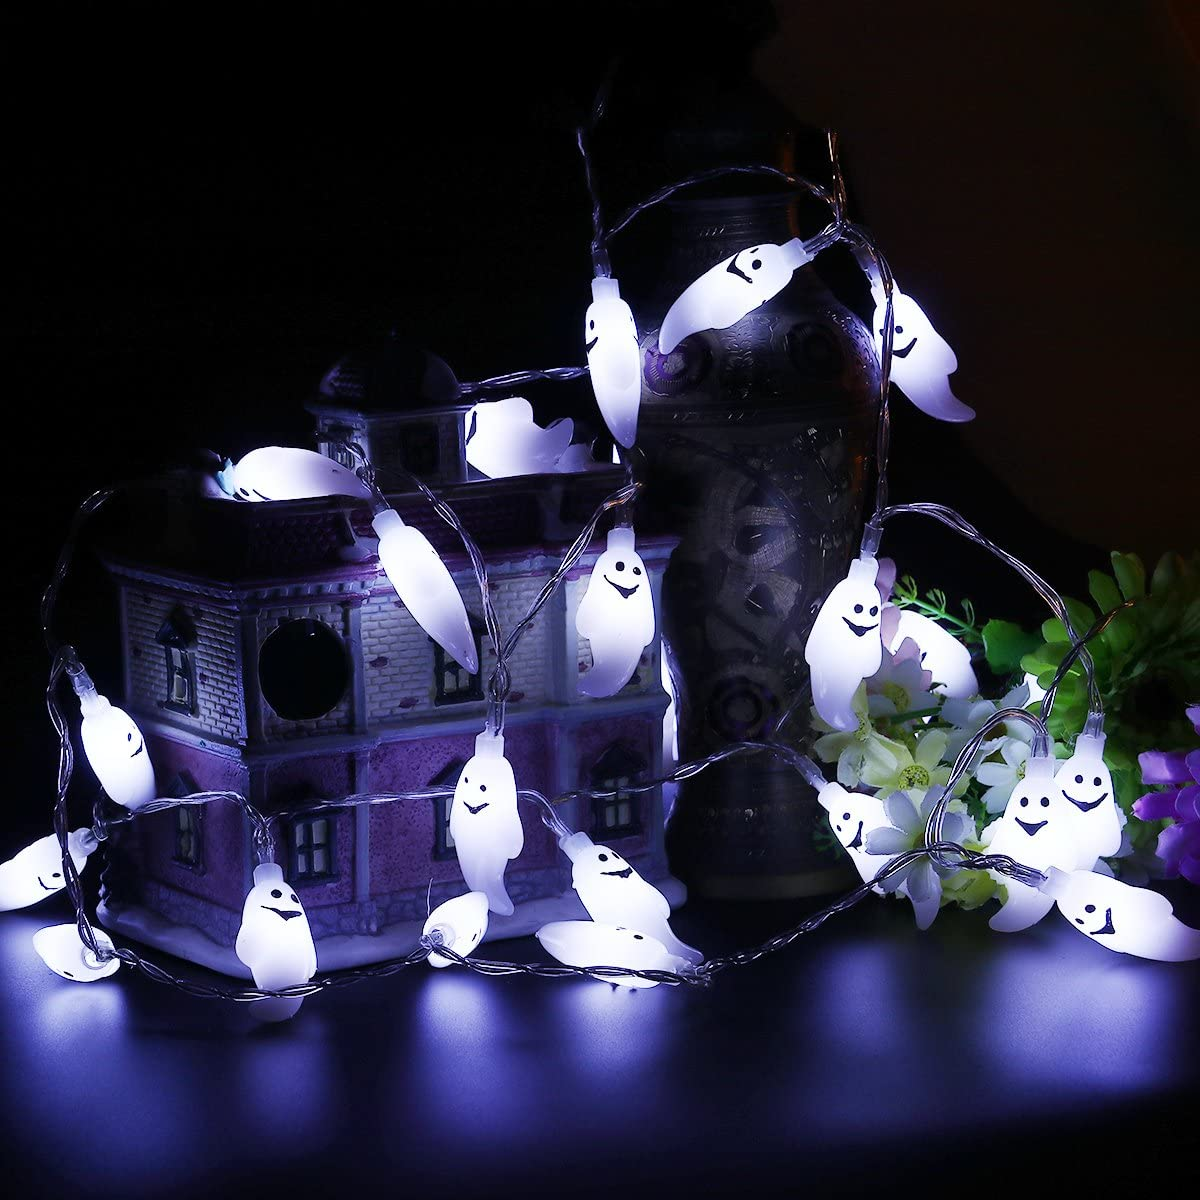 Halloween Ghost String Lights, LED Battery Operated Halloween Lights, String Lights for Halloween Decorations